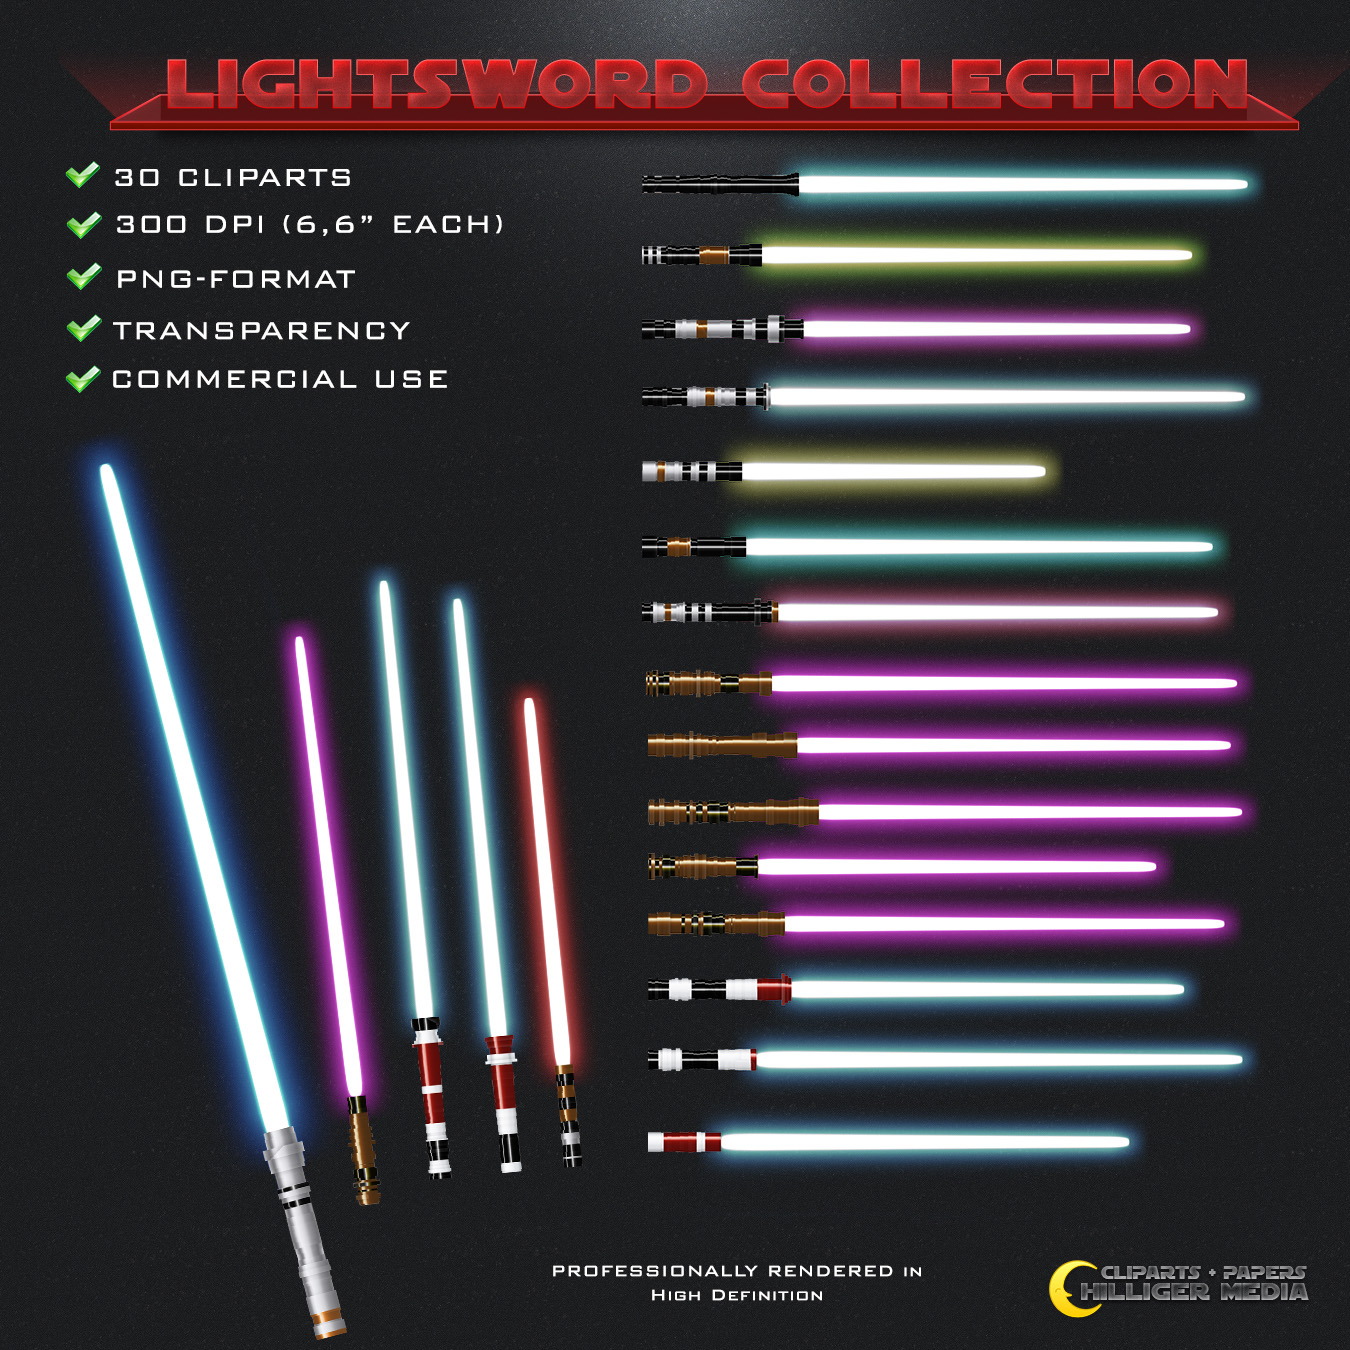 Lightsword Collection